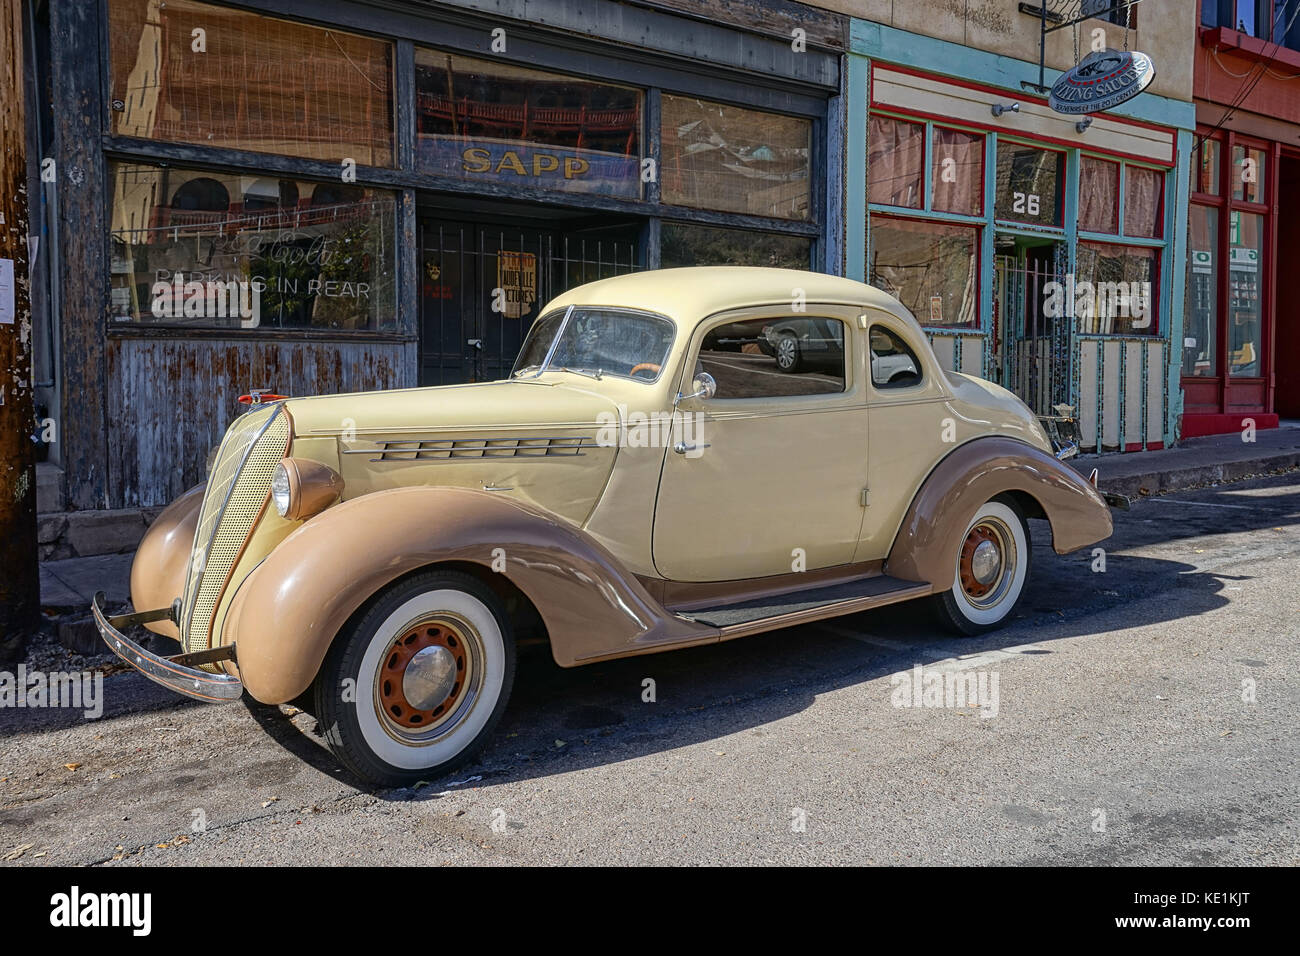 December 9, 2015 Bisbee, Arizona, USA: vintage collector's car parked in the front of victorian-style bulidings, Stock Photo